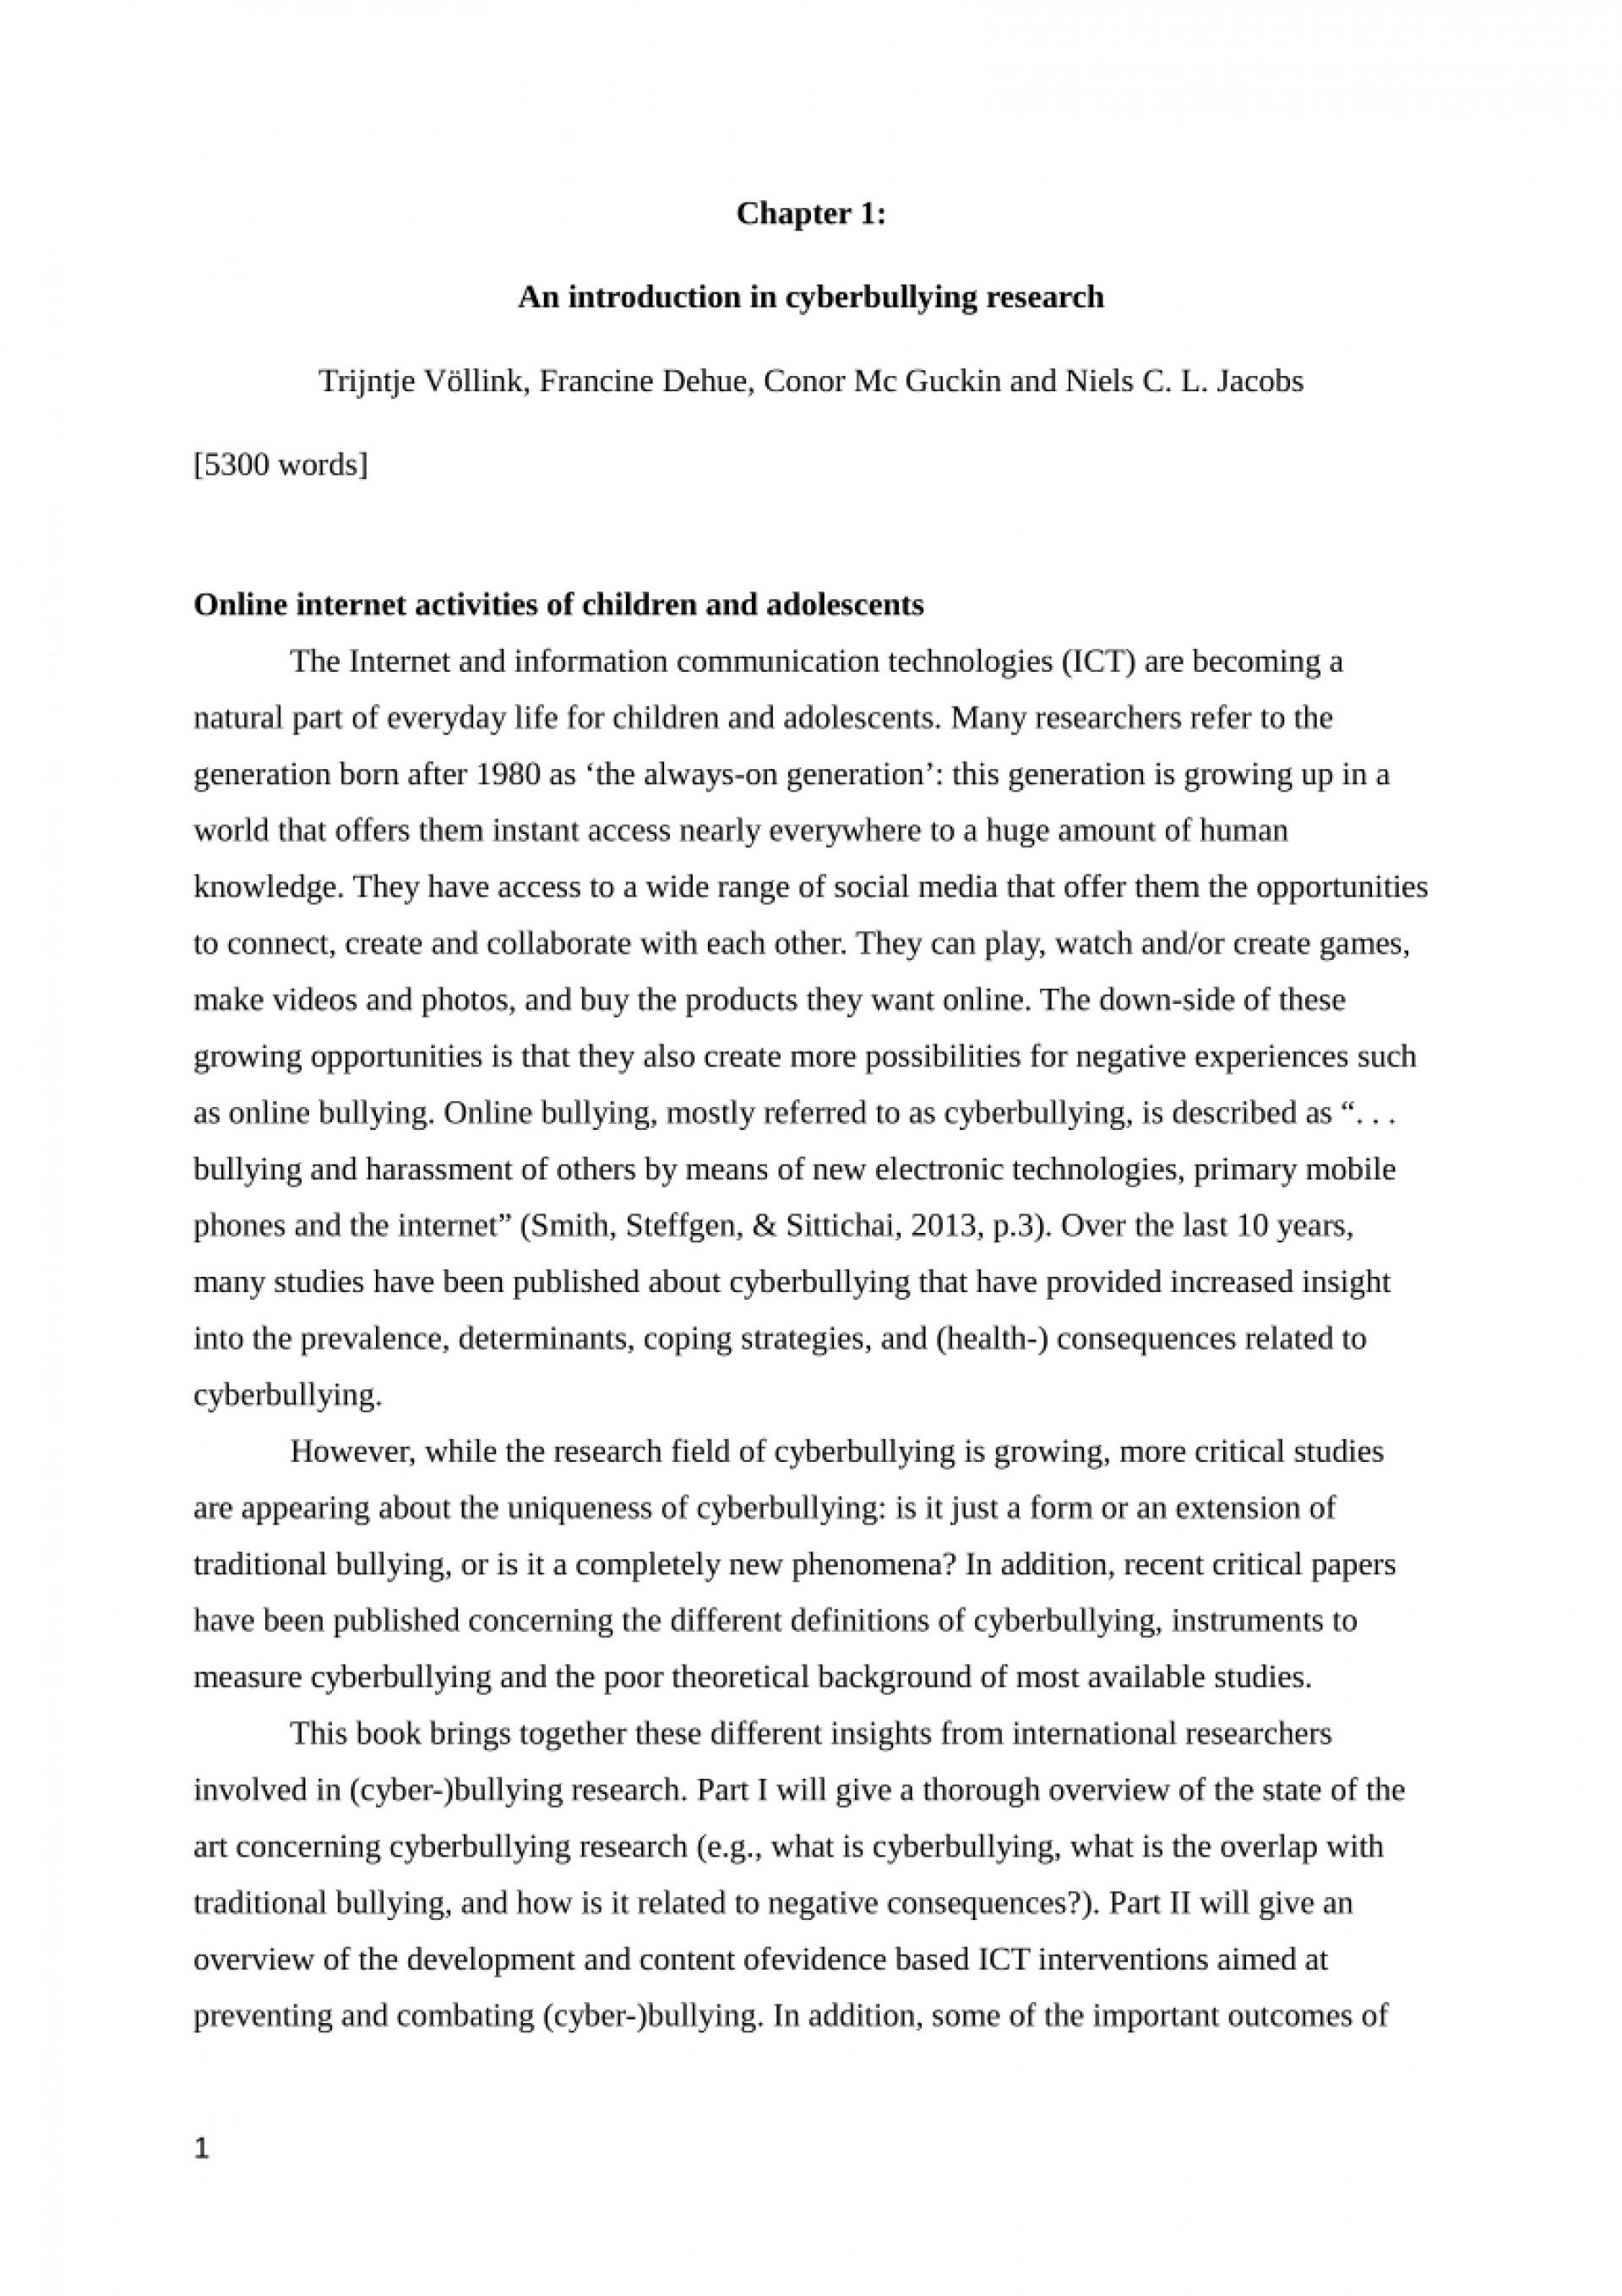 001 Research Paper On Cyber Bullying Stirring Cyberbullying Titles Outline 1920